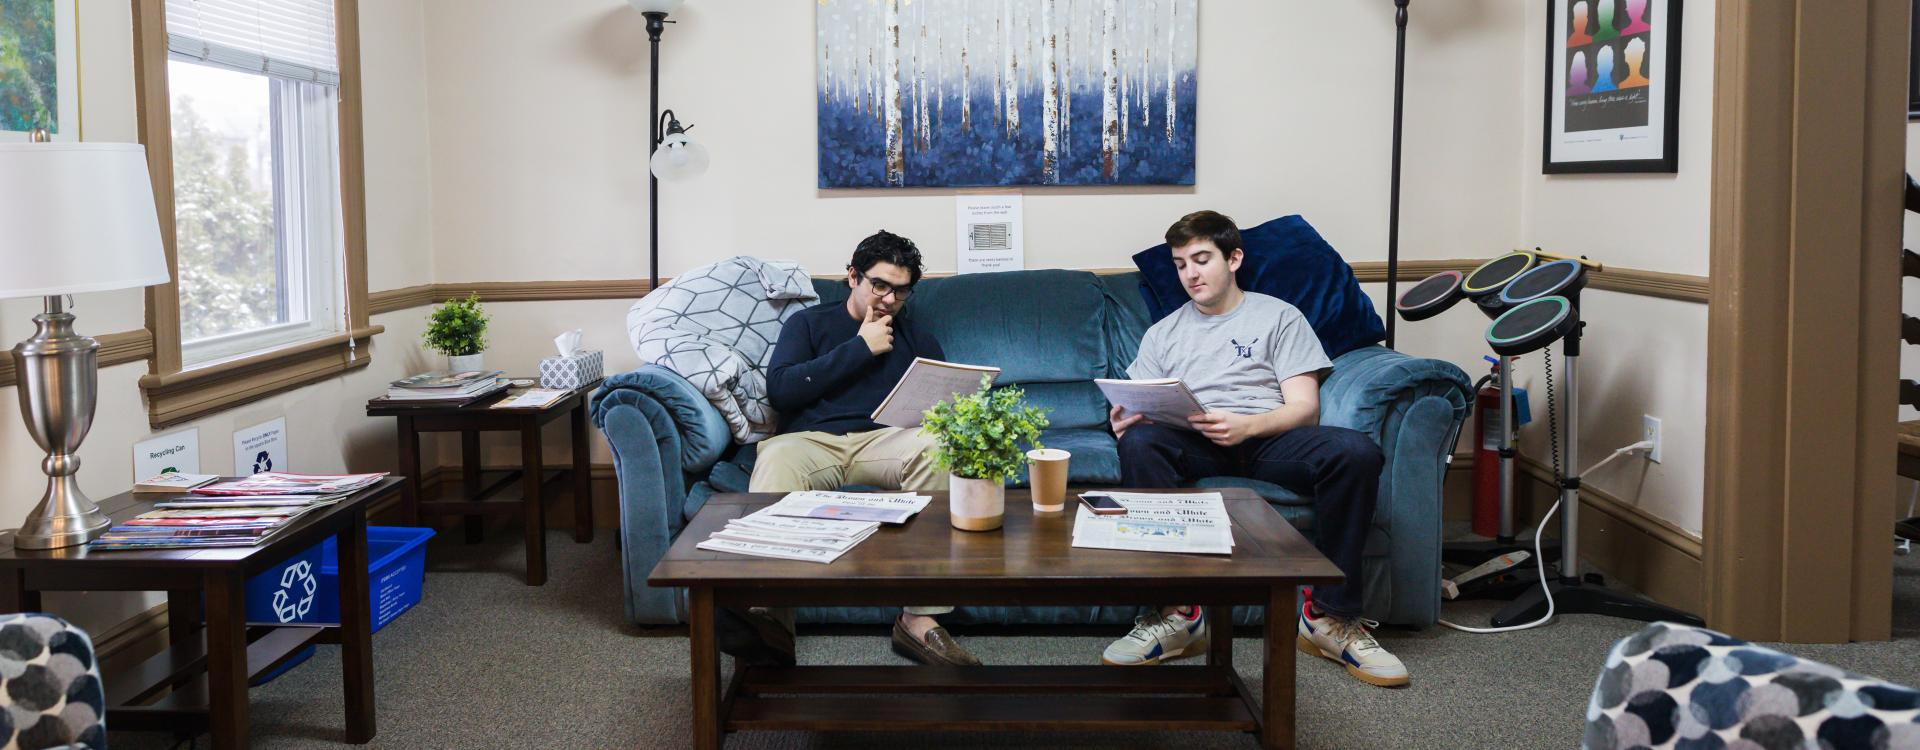 men hanging out on a couch